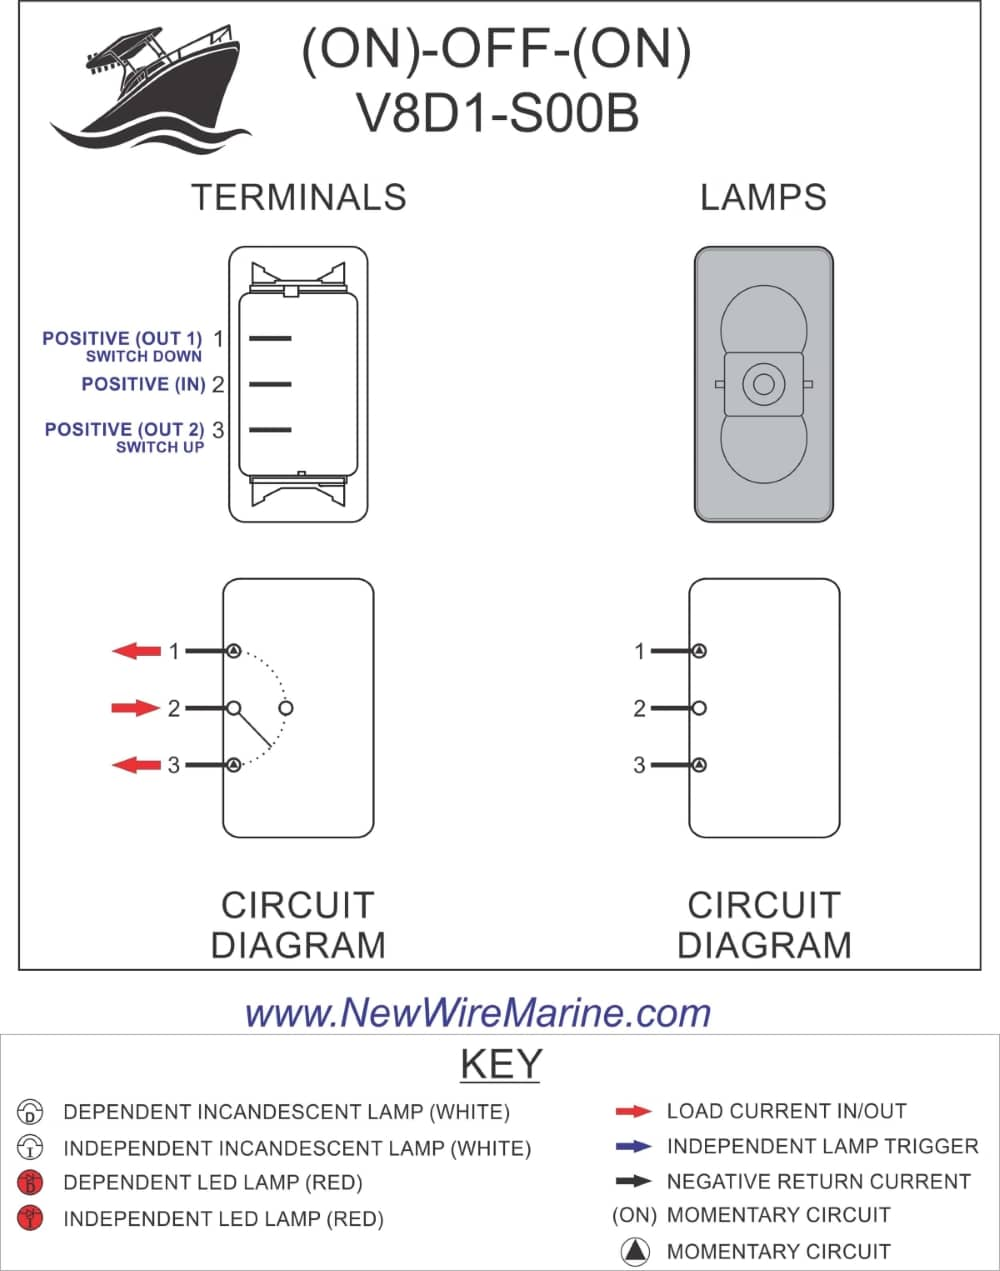 How To Wire A Toggle Switch With 6 Prongs : toggle, switch, prongs, Windlass, Rocker, Switch, Carling, Contura, Illuminated